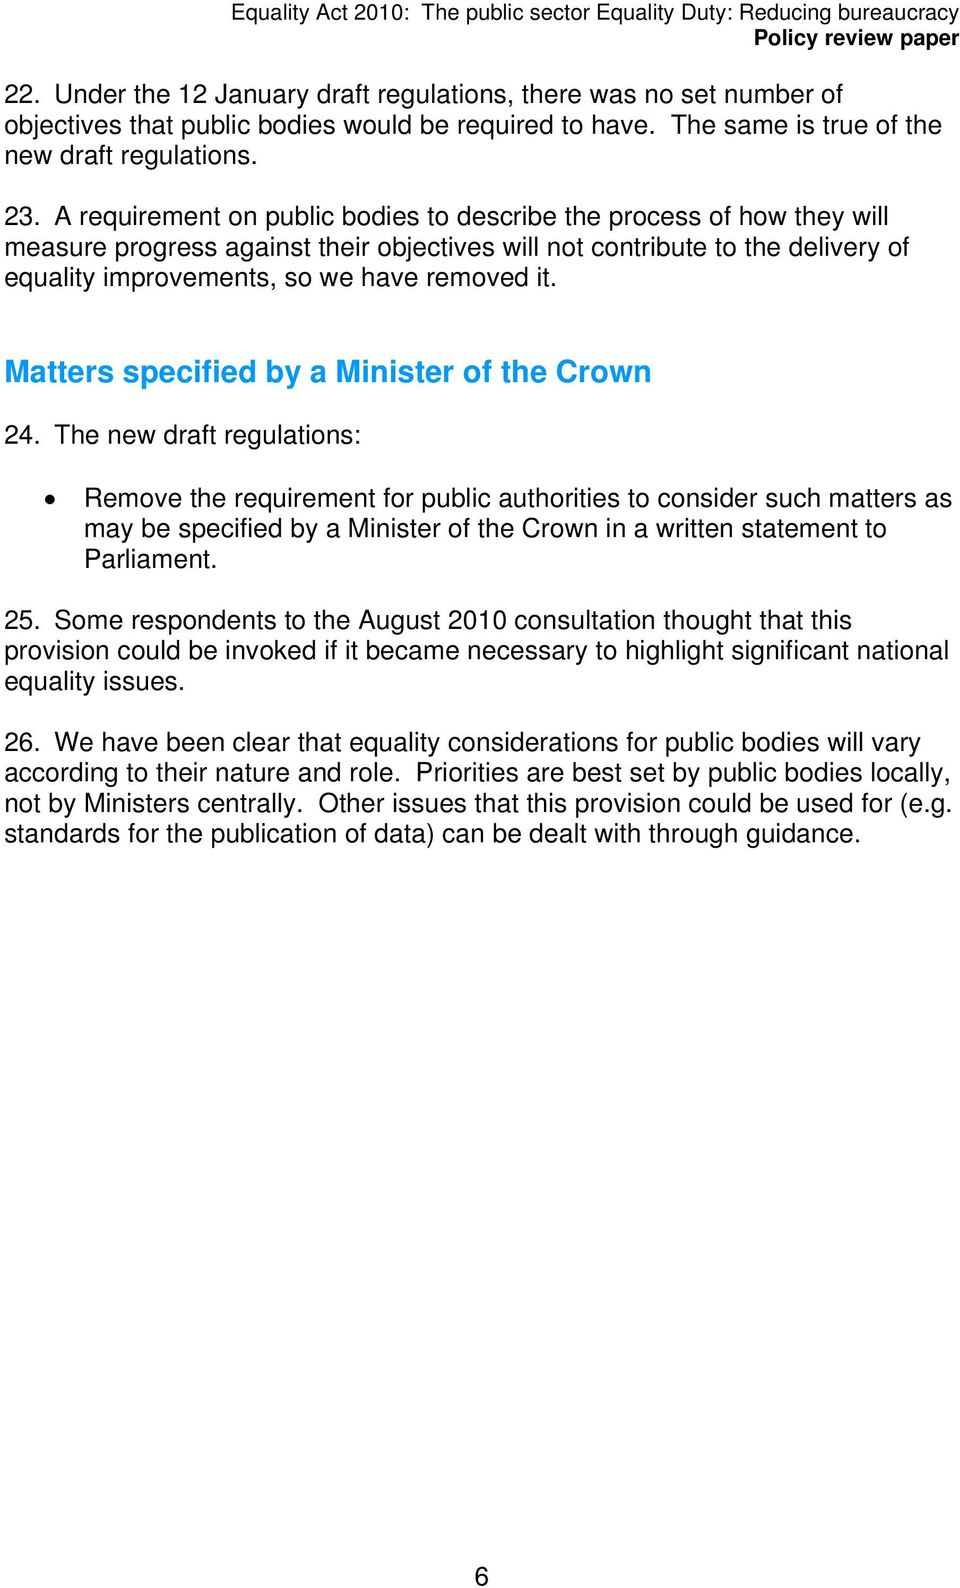 Matters specified by a Minister of the Crown 24.